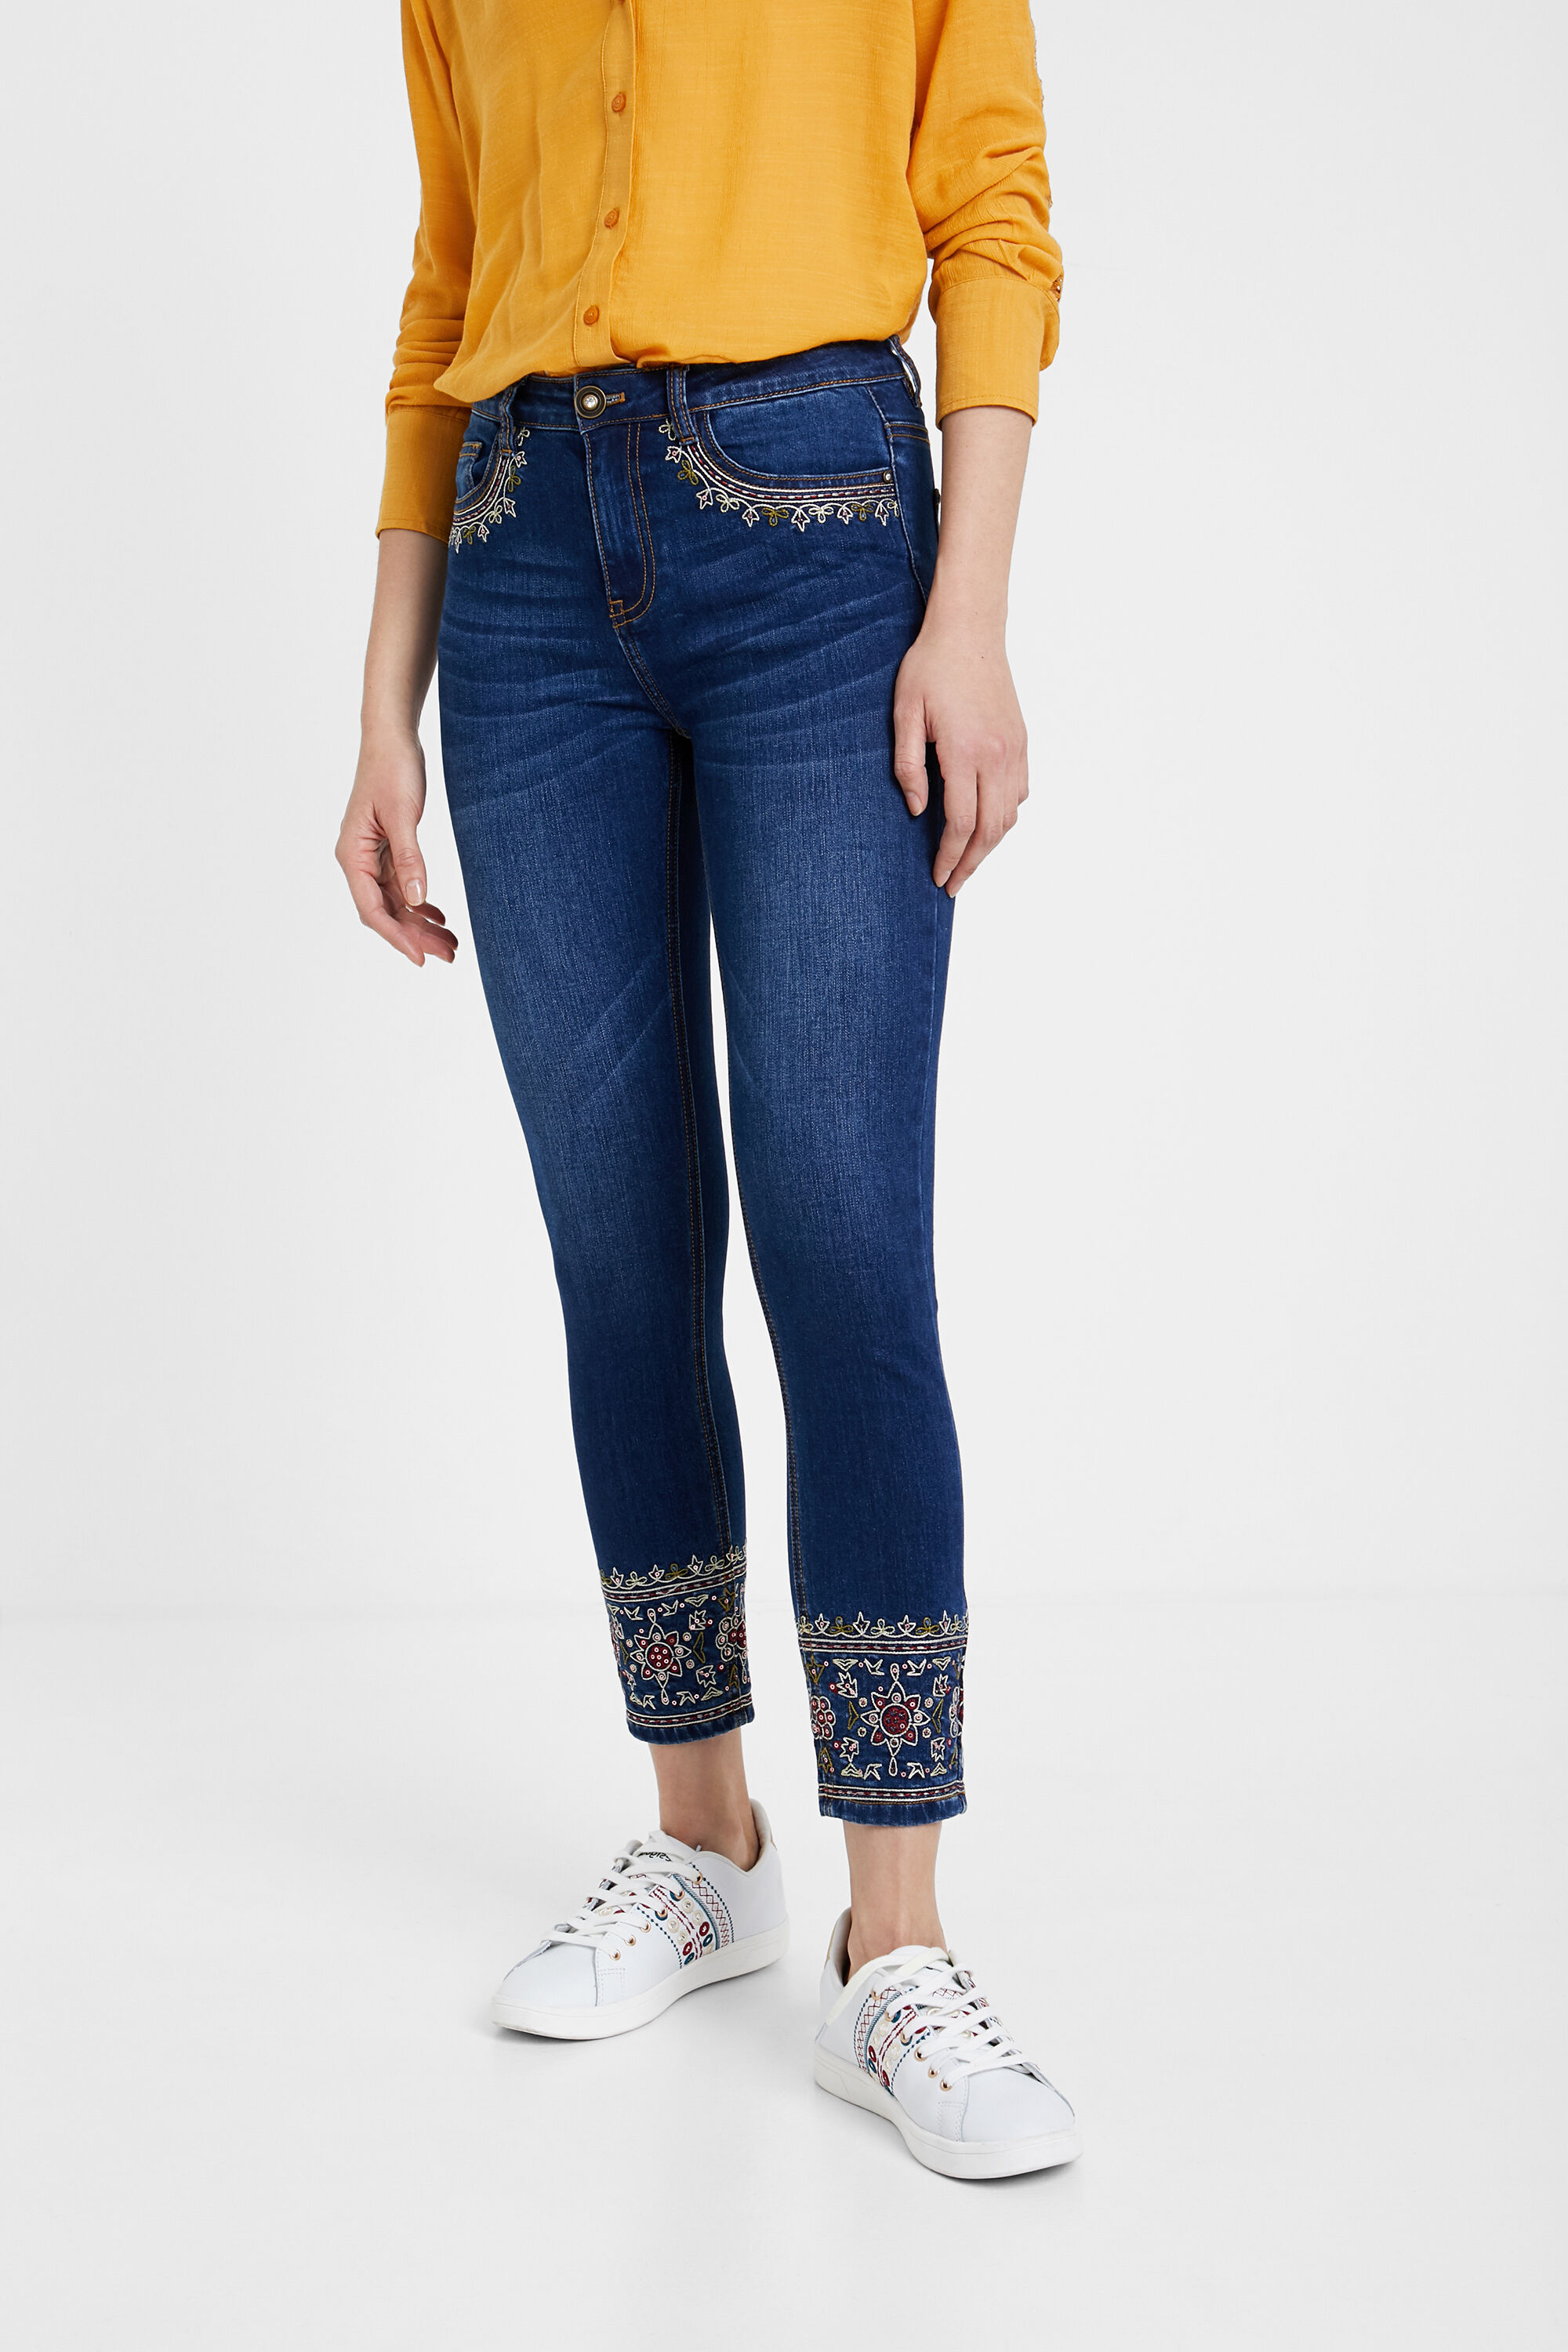 Skinny exotic jeans - BLUE - 30